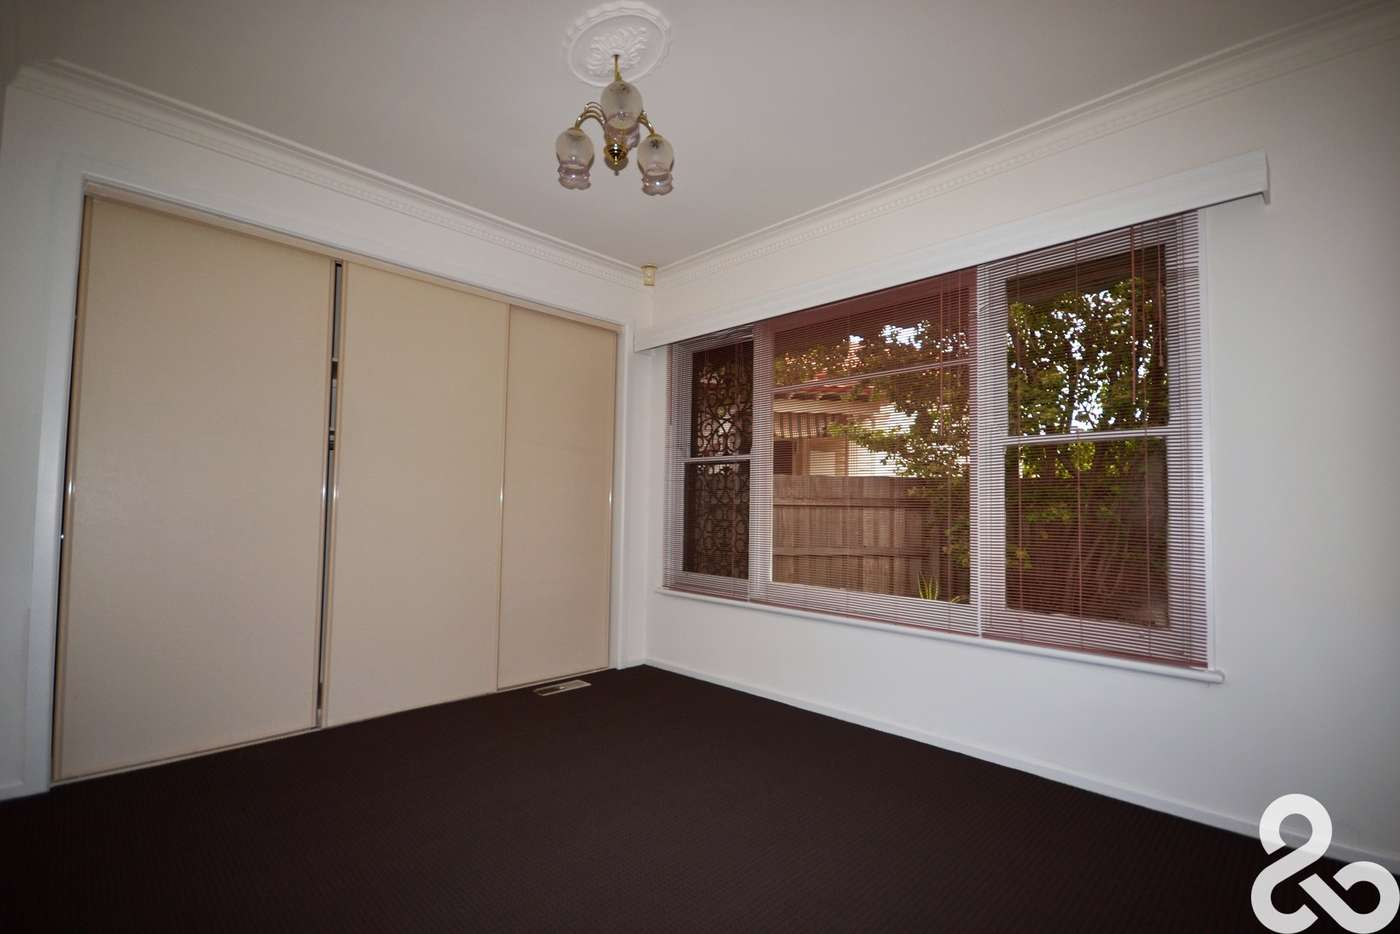 Seventh view of Homely house listing, 118 Bruce Street, Preston VIC 3072